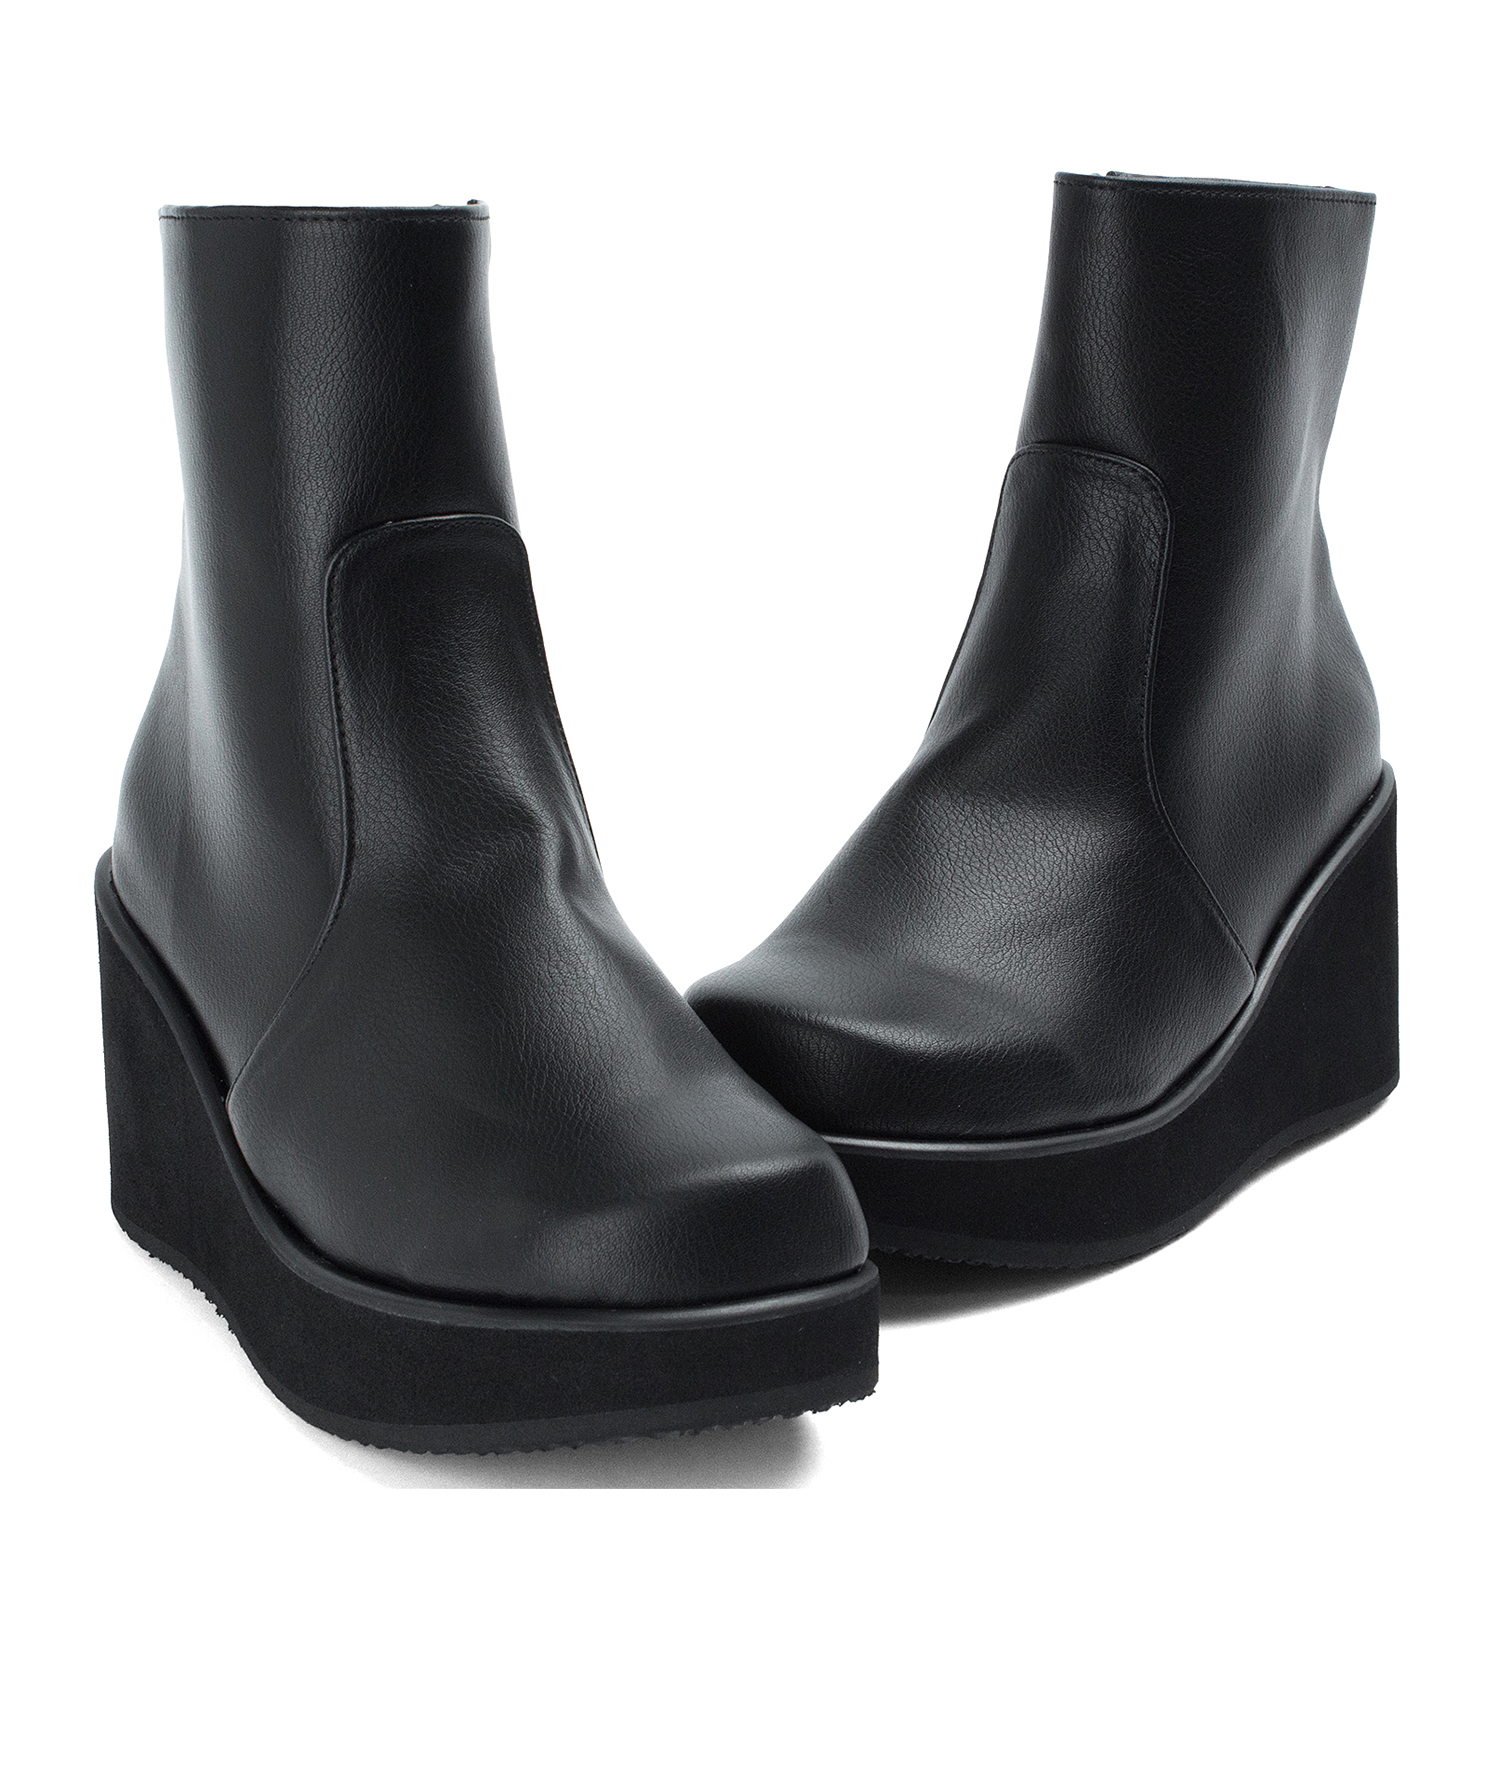 Lightweighted Platform Black Wedge Ankle Boots - annakastleshoes.com